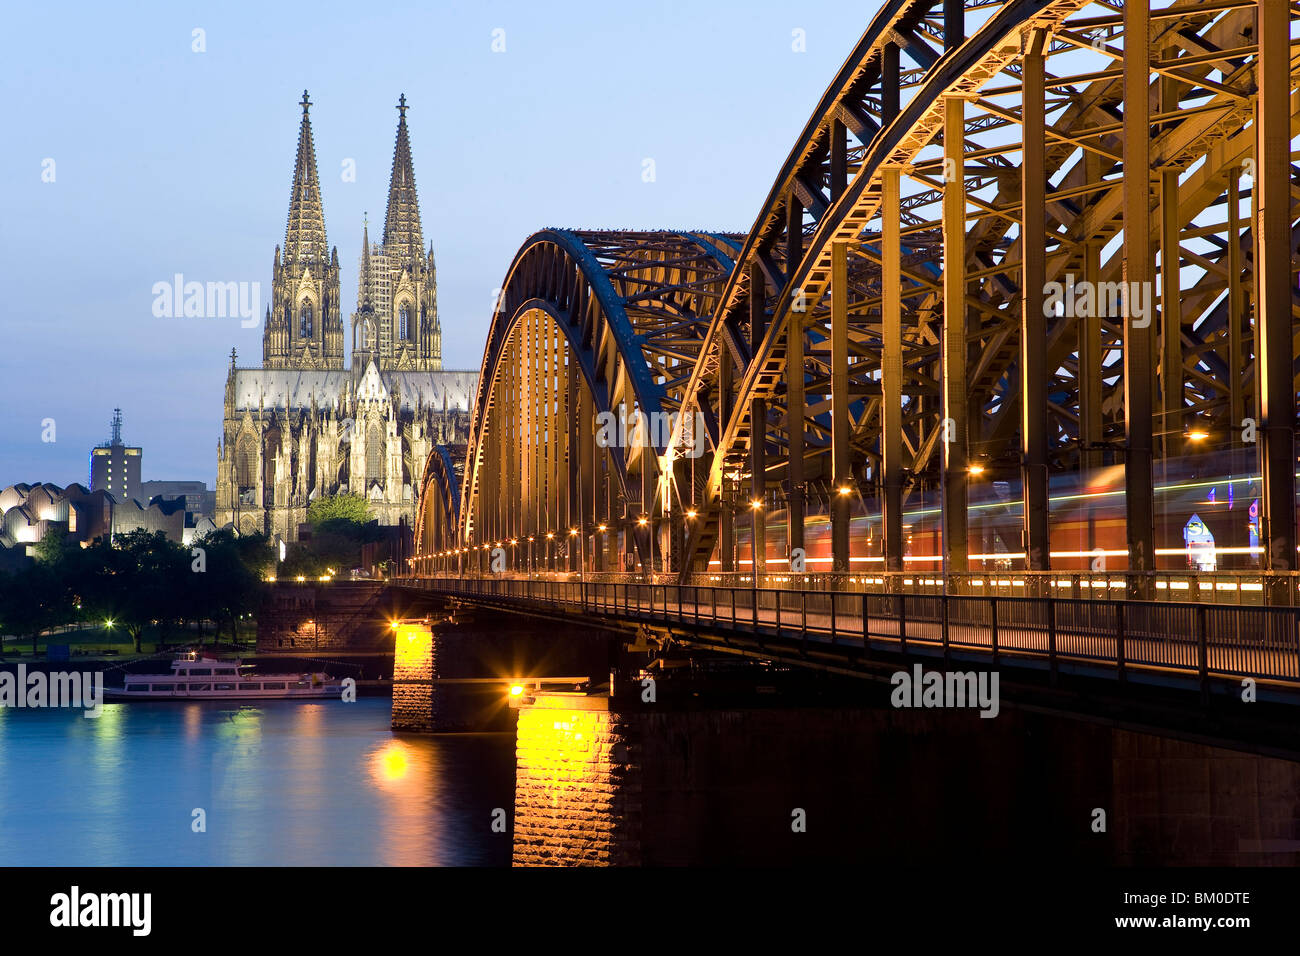 Cologne Cathedral with Hohenzollernbruecke, Cologne, North Rhine-Westphalia, Germany - Stock Image